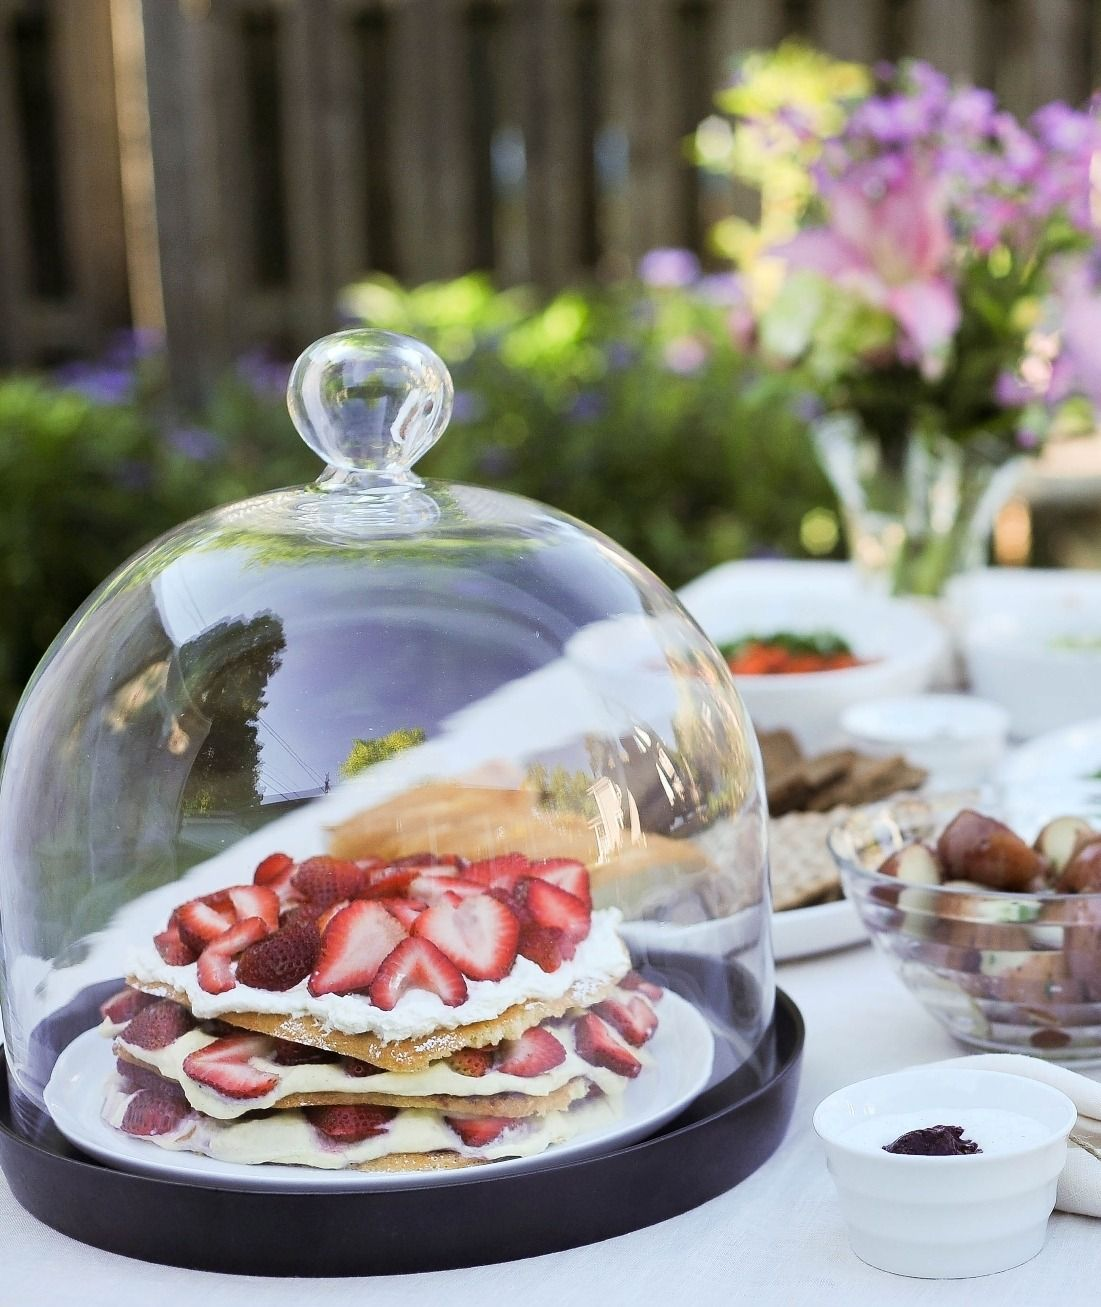 Get ready to add another summer celebration to your agenda. Tommy Engström of Smak treats us to delicious recipes from one of his favorite Swedish traditional holidays, the Midsummer Party.